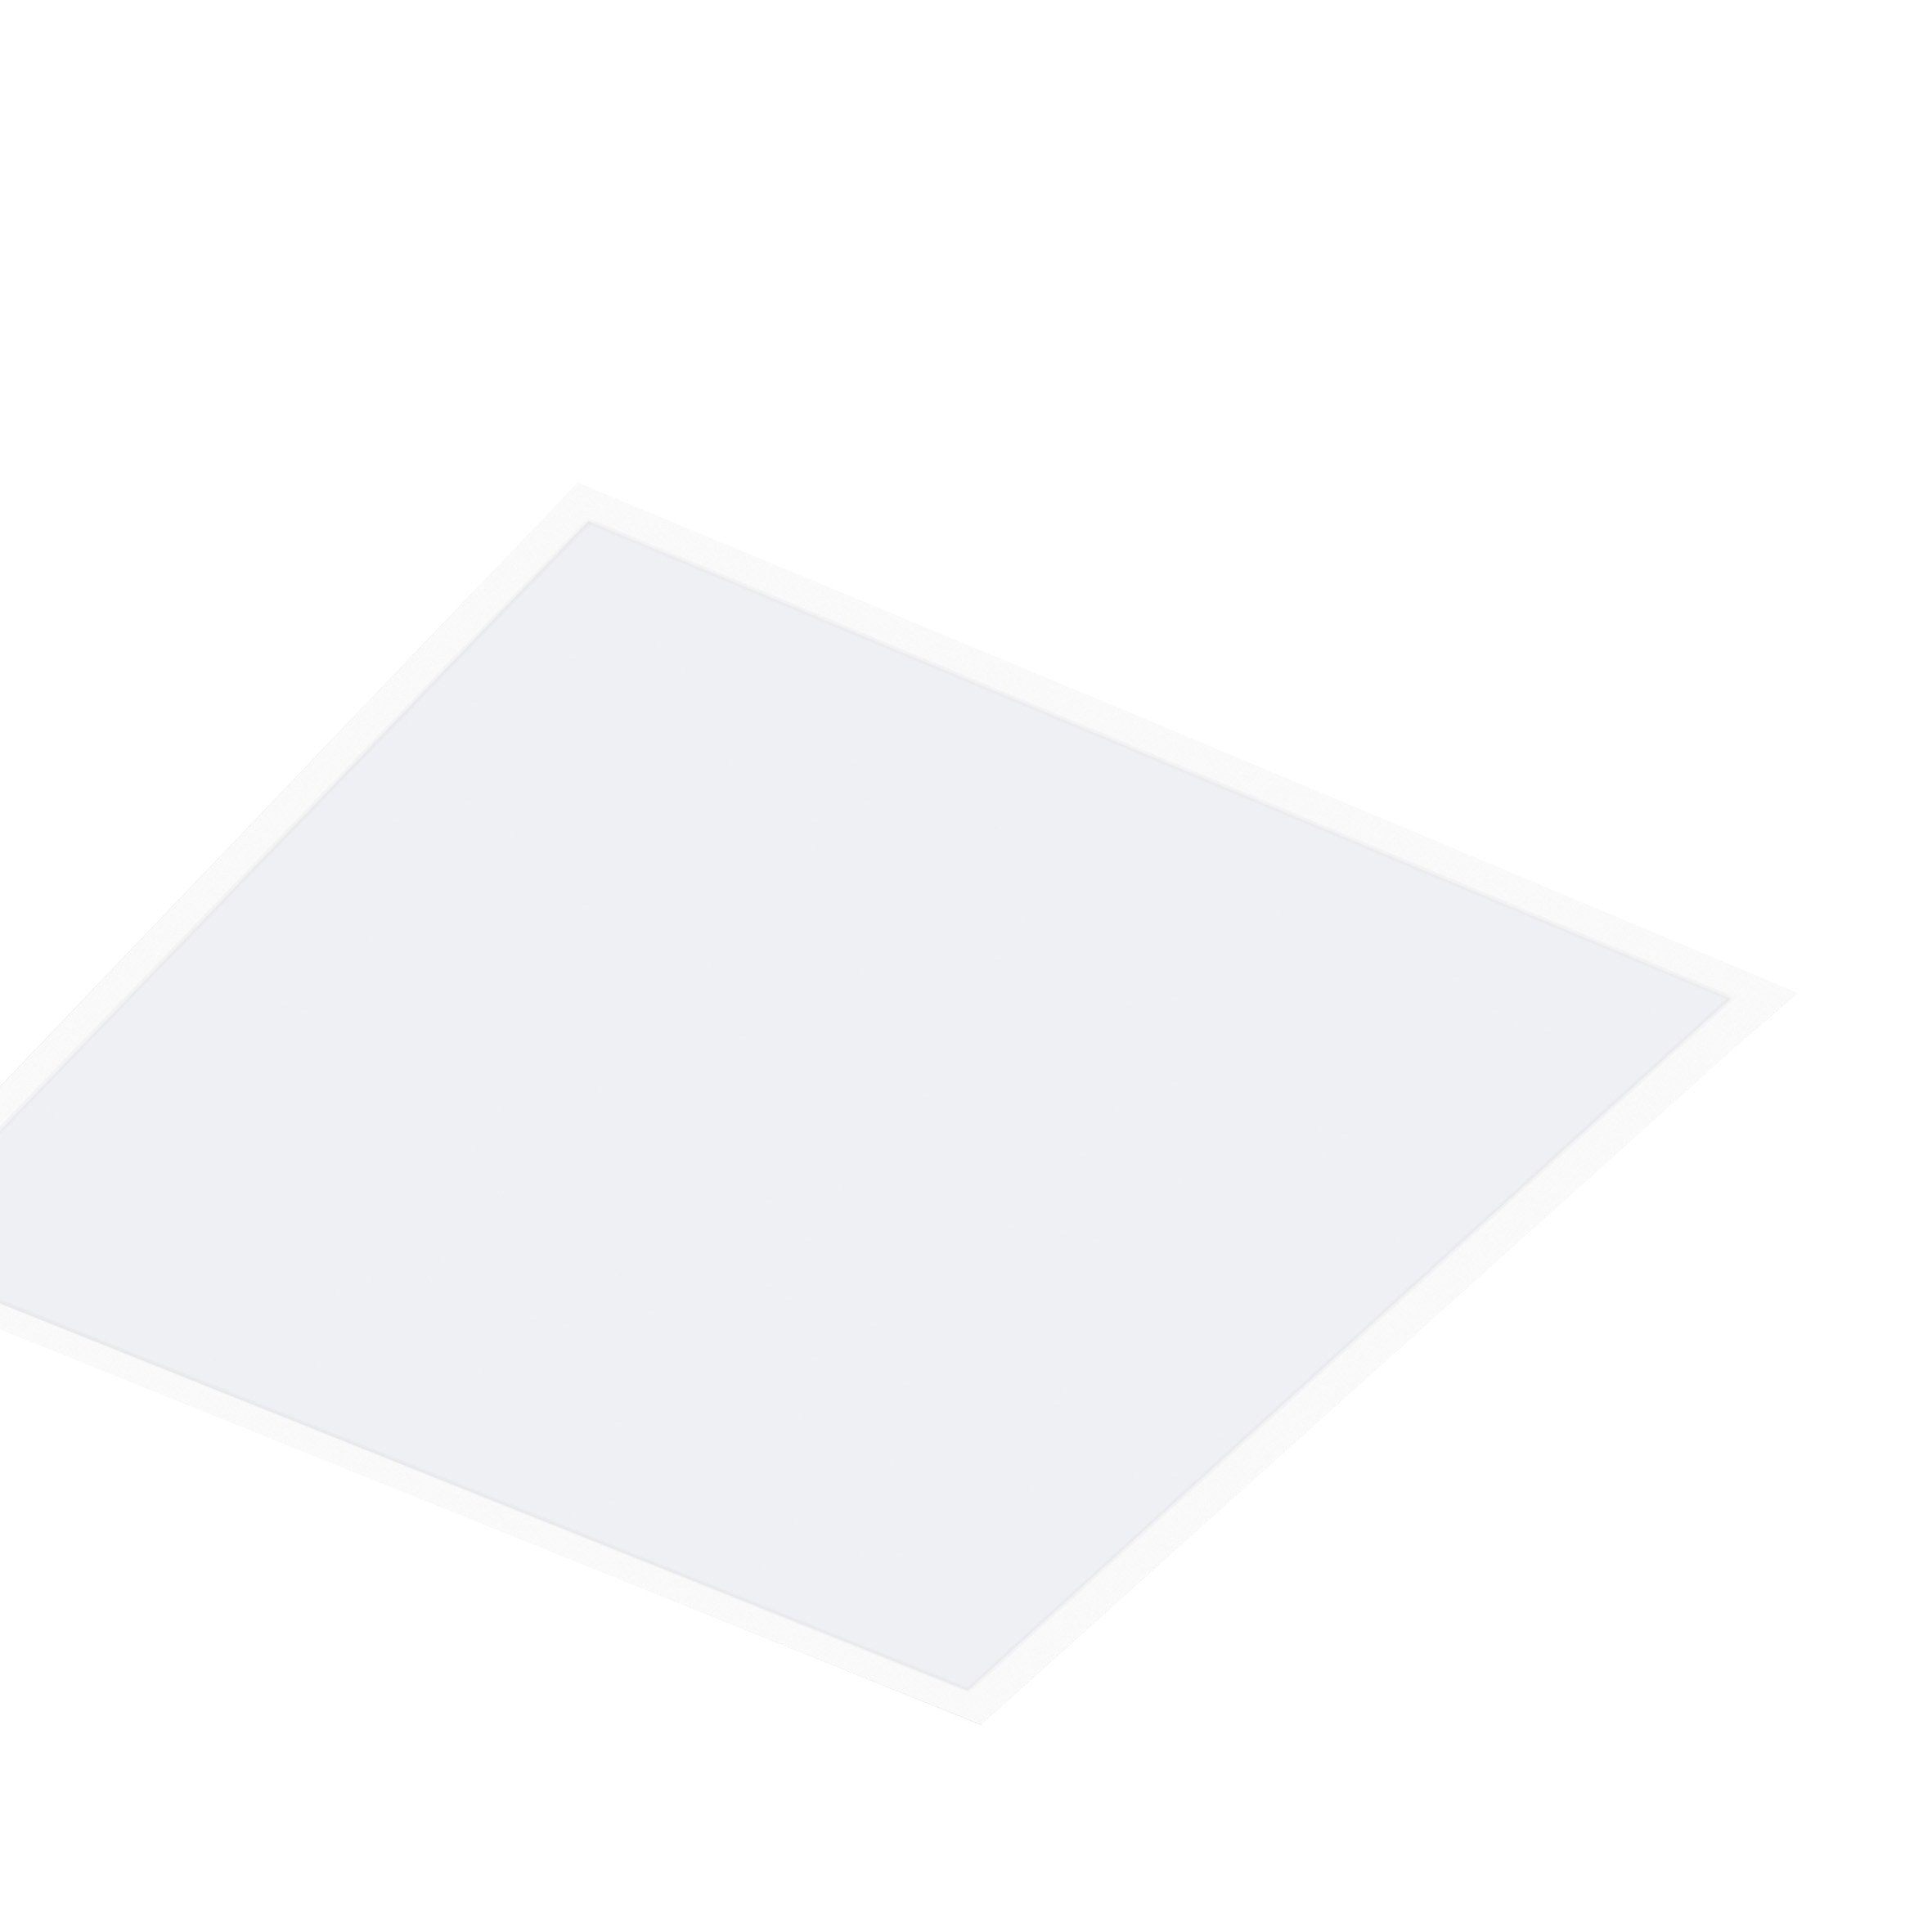 Pannello Led 60x60 48W Bordo bianco Incluso Driver Led